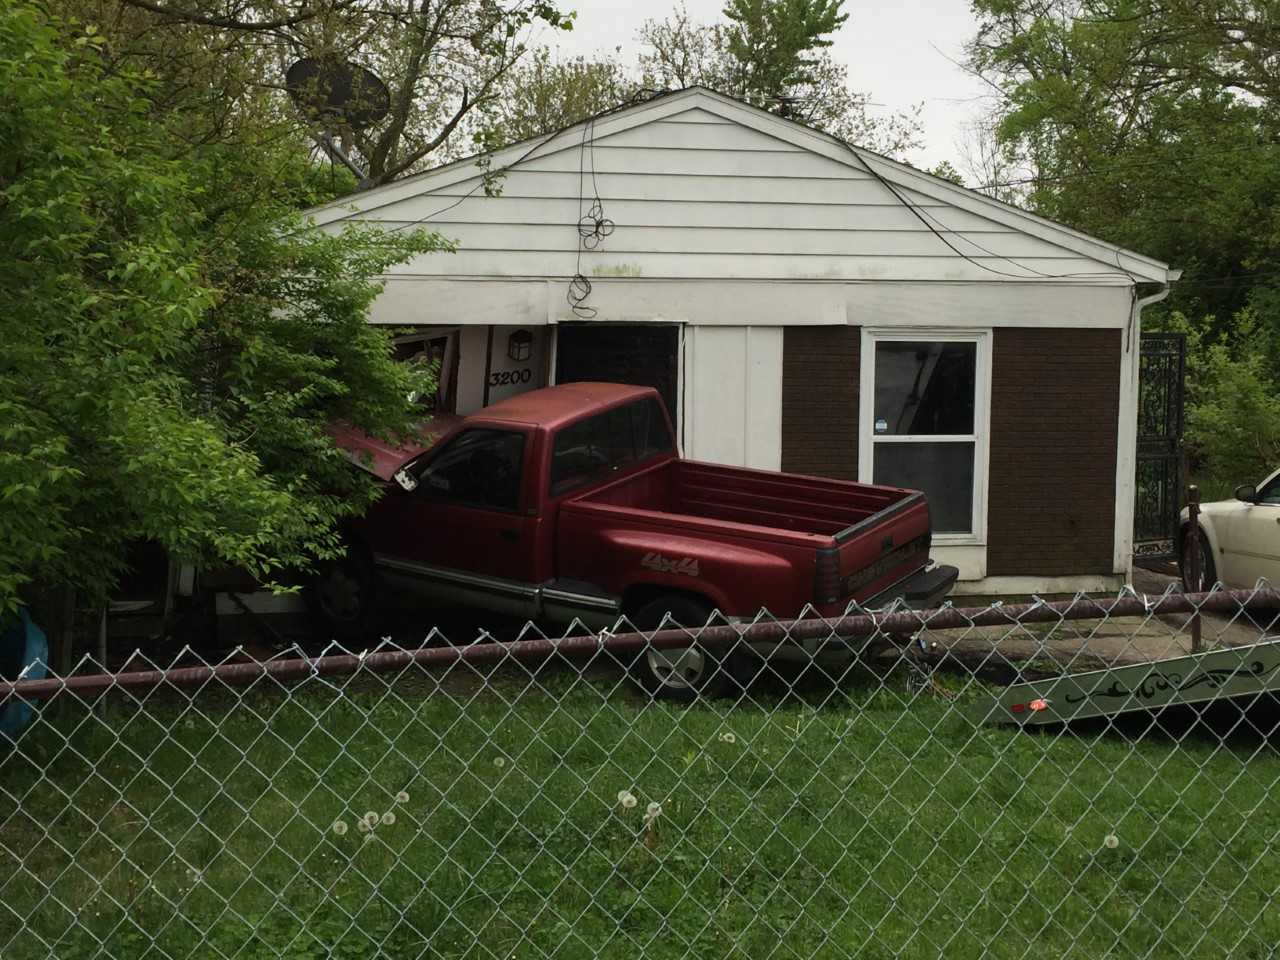 Car into house_1556979089376.jfif.jpg